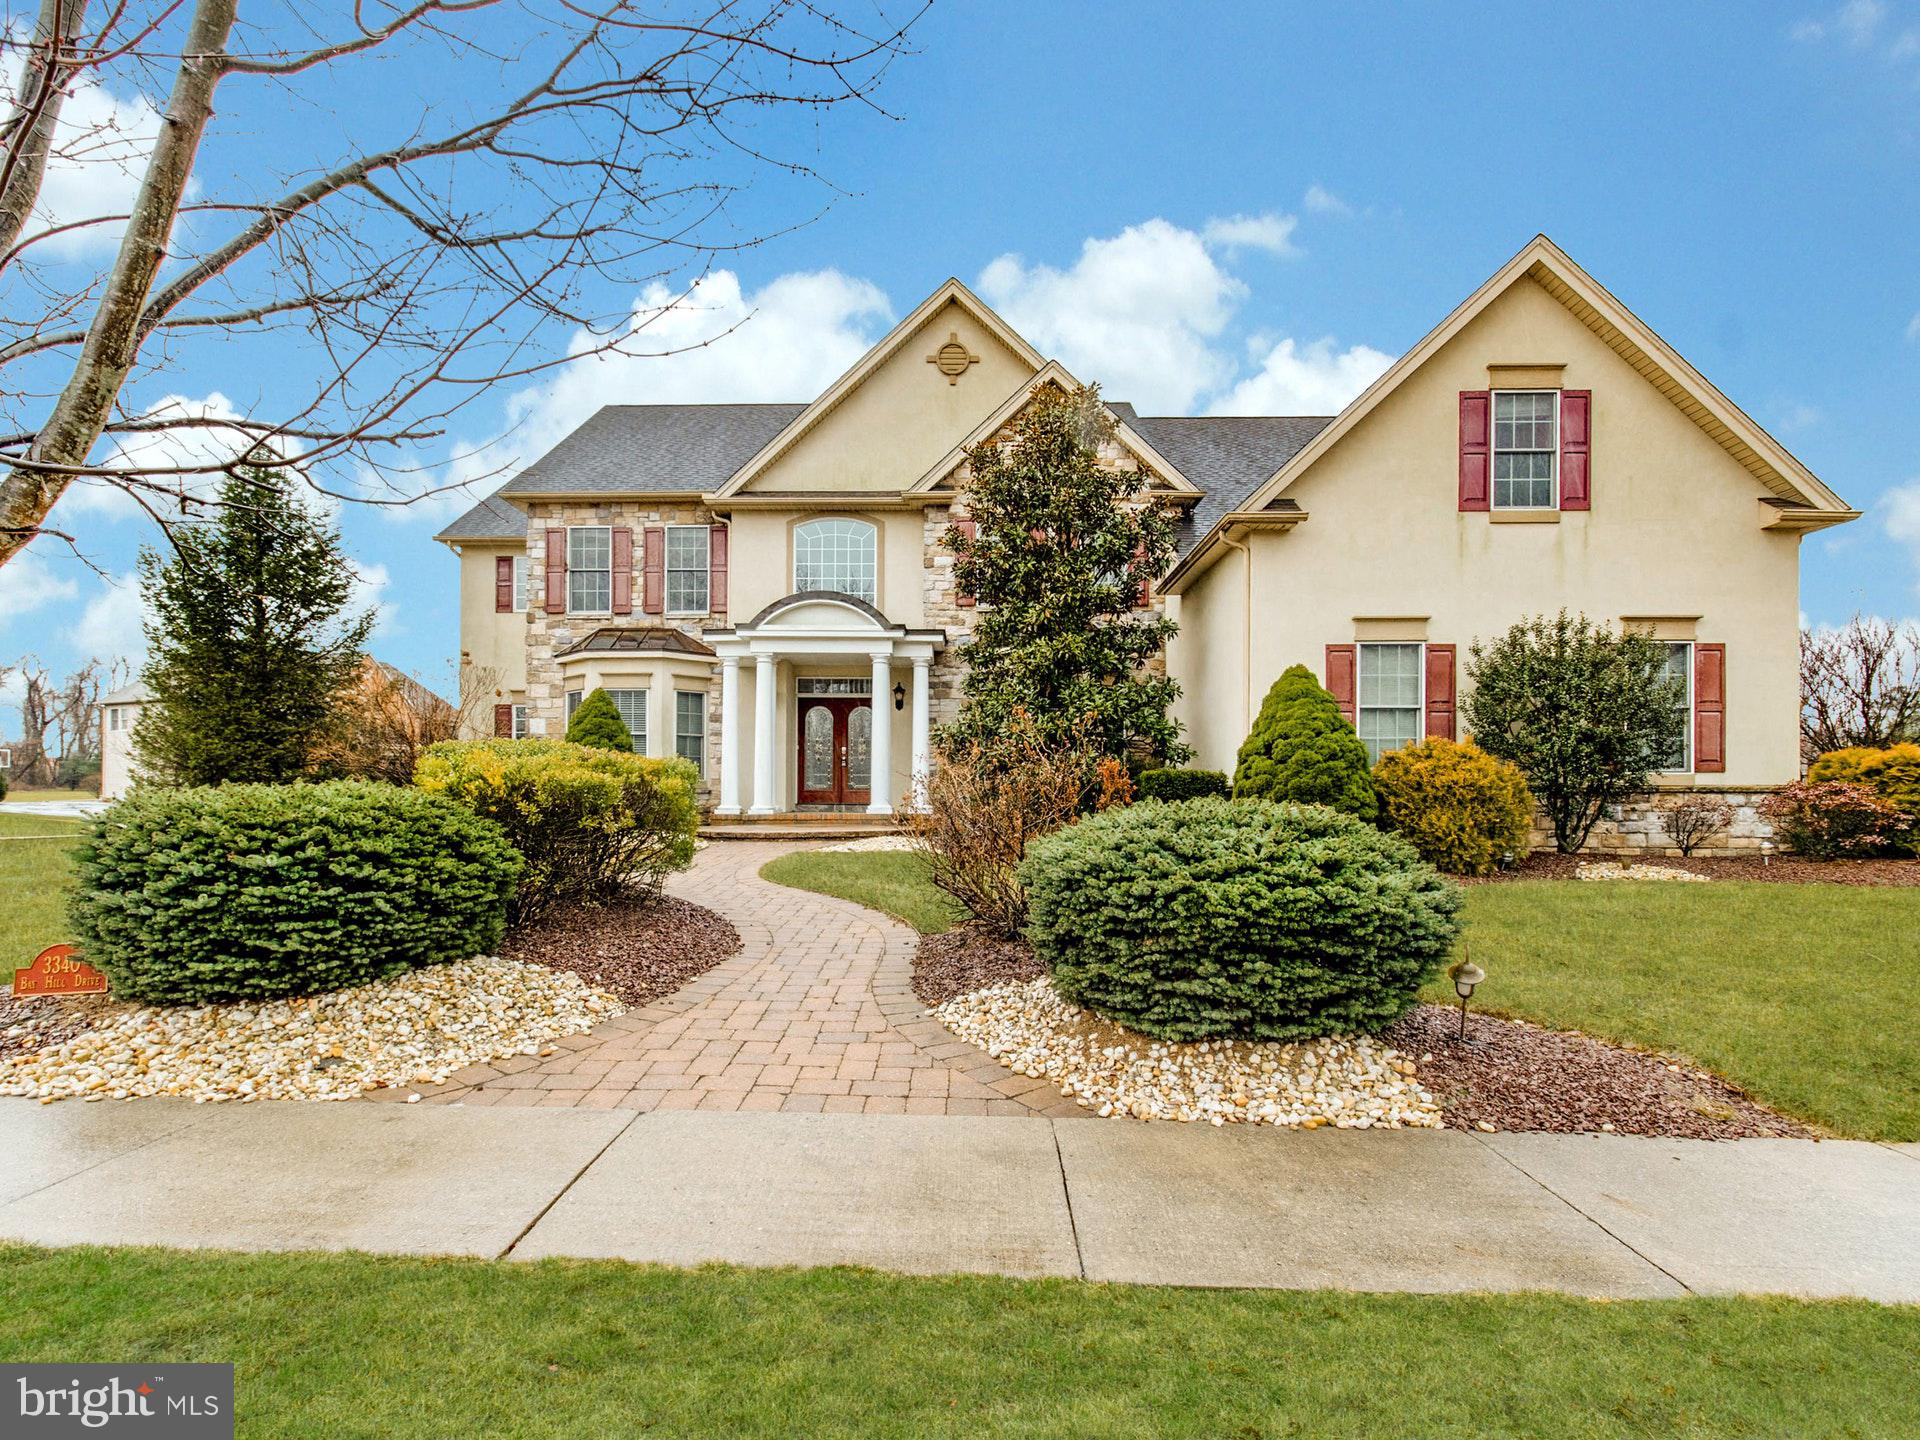 3340 BAY HILL DRIVE S, CENTER VALLEY, PA 18034